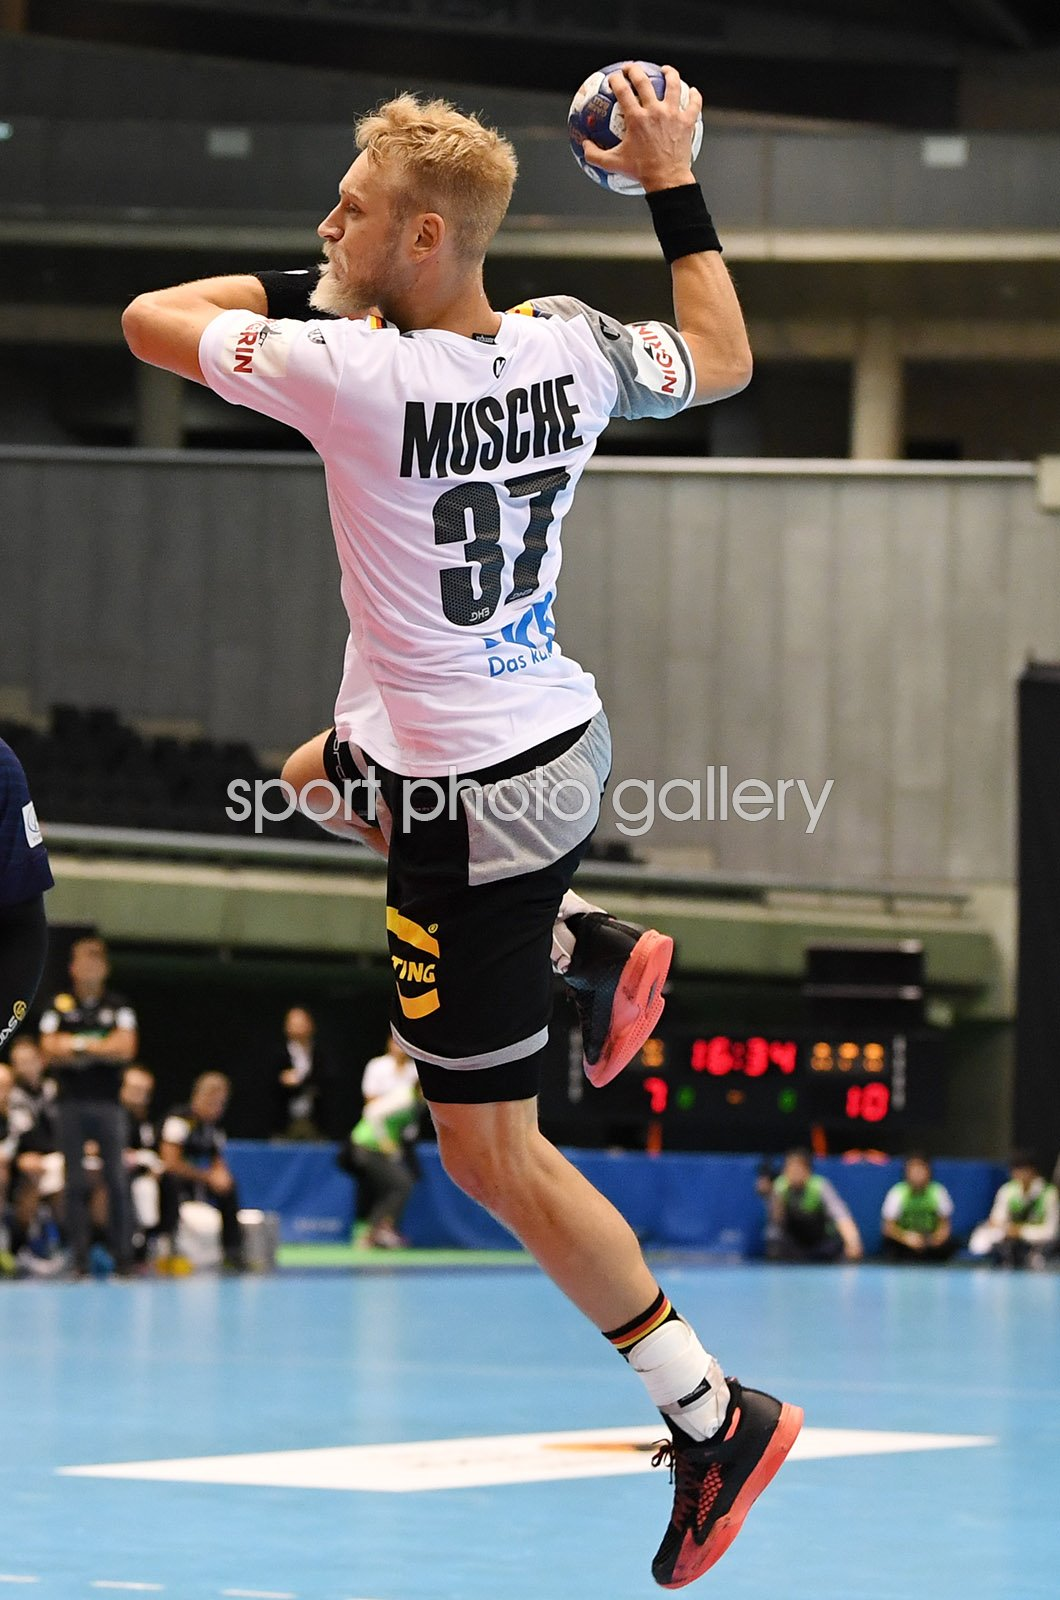 Matthias Musche Germany v Japan Handball International 2018